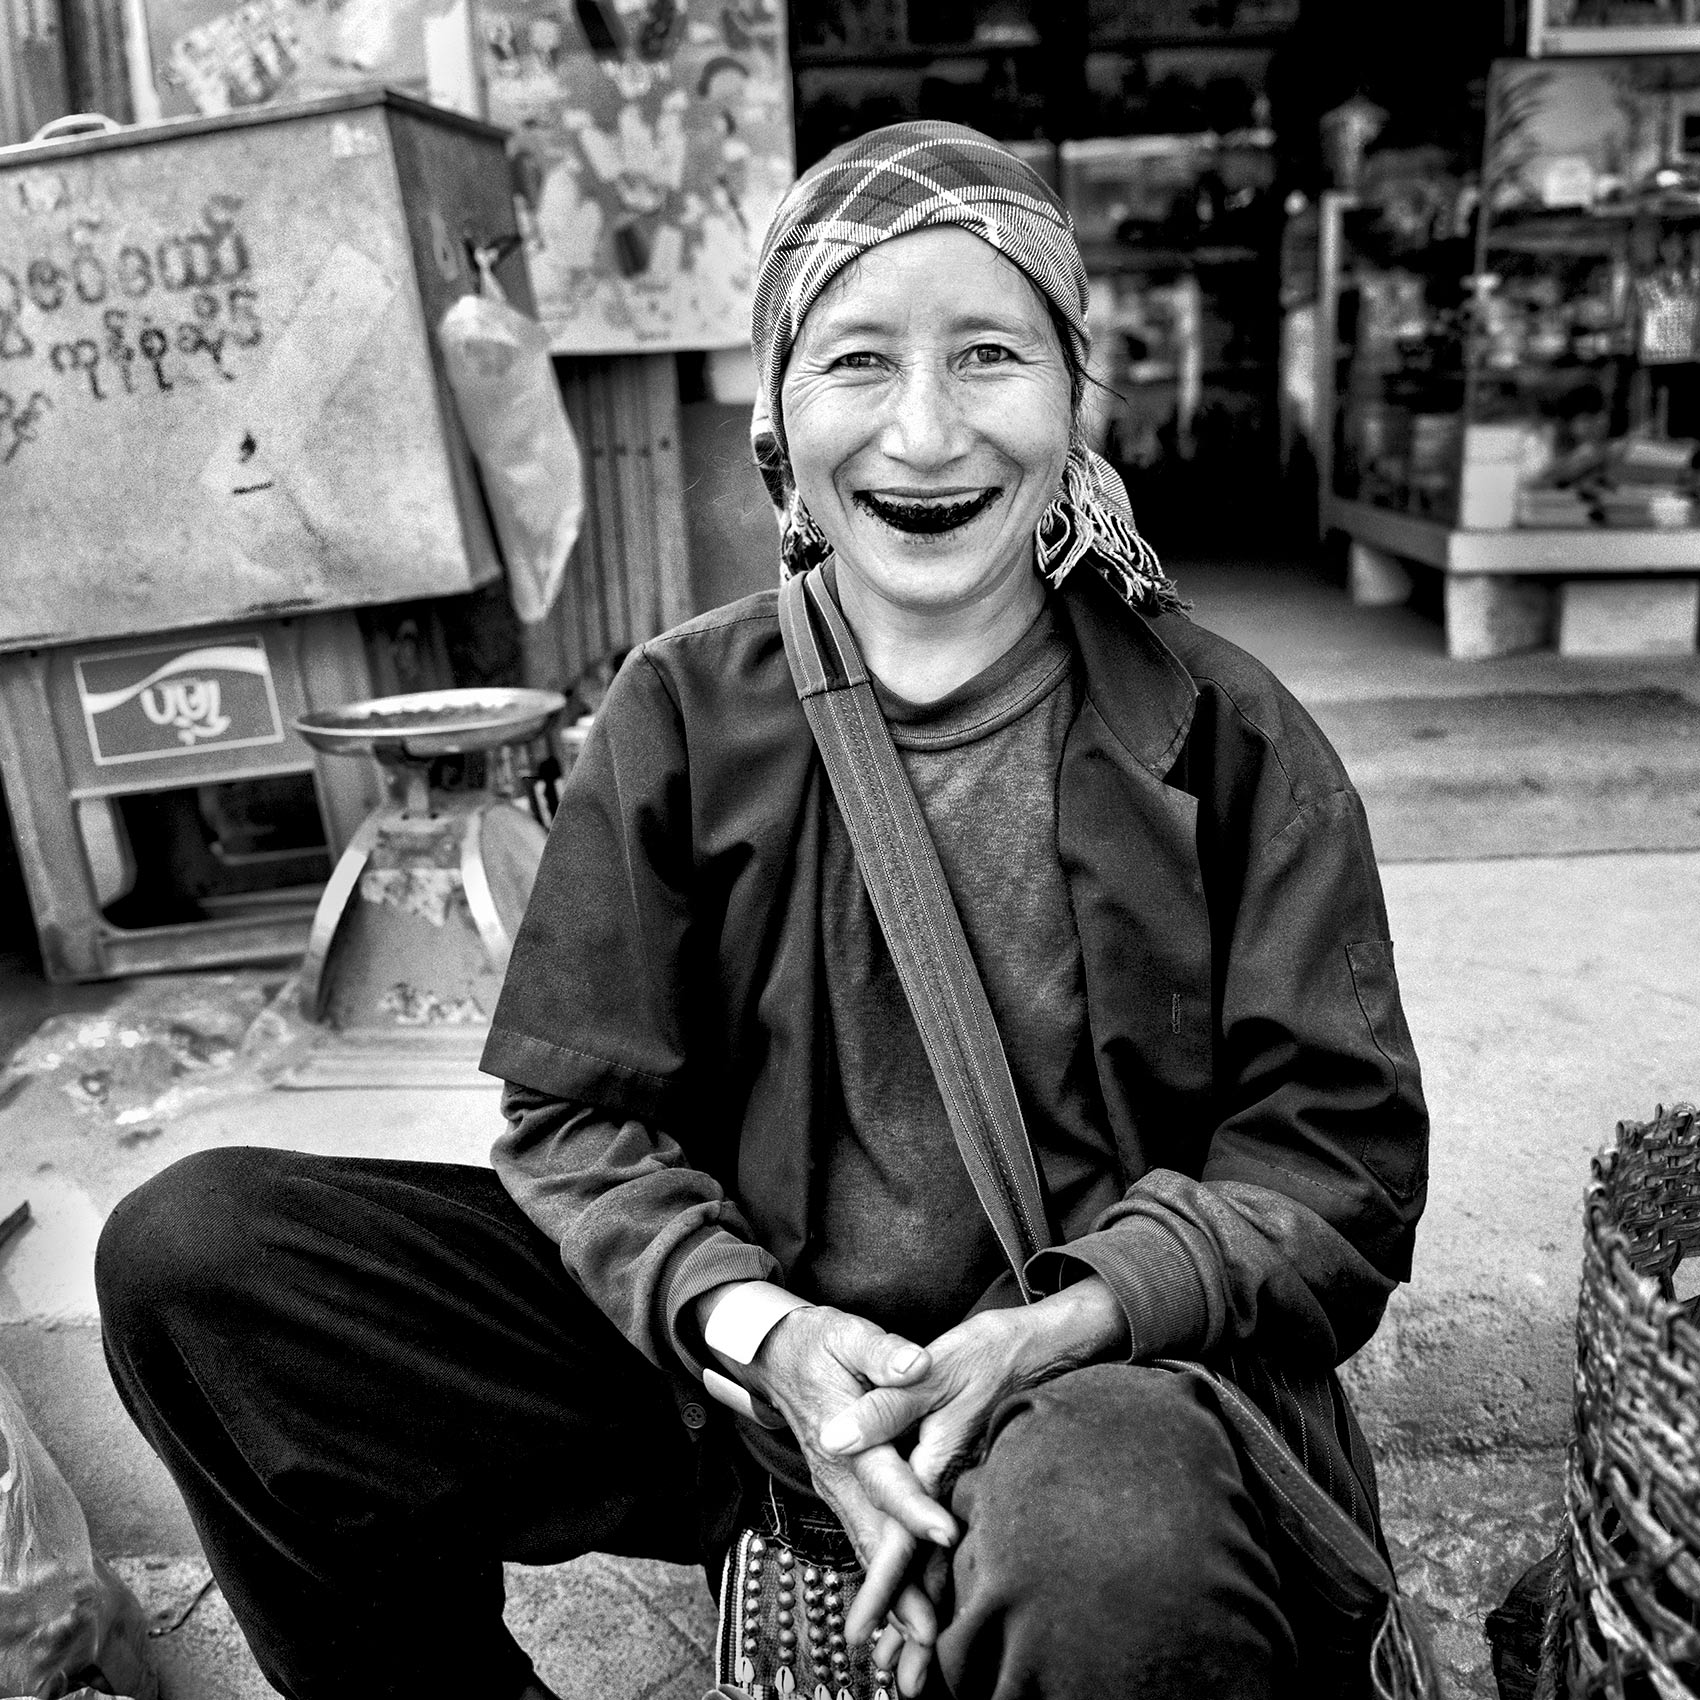 a-woman-in-an-myanmar-village-smiles-showing-her-dark-teeth-stained-by-betel-nut-chew-which-is-made-of-the-nut-and-tobacco